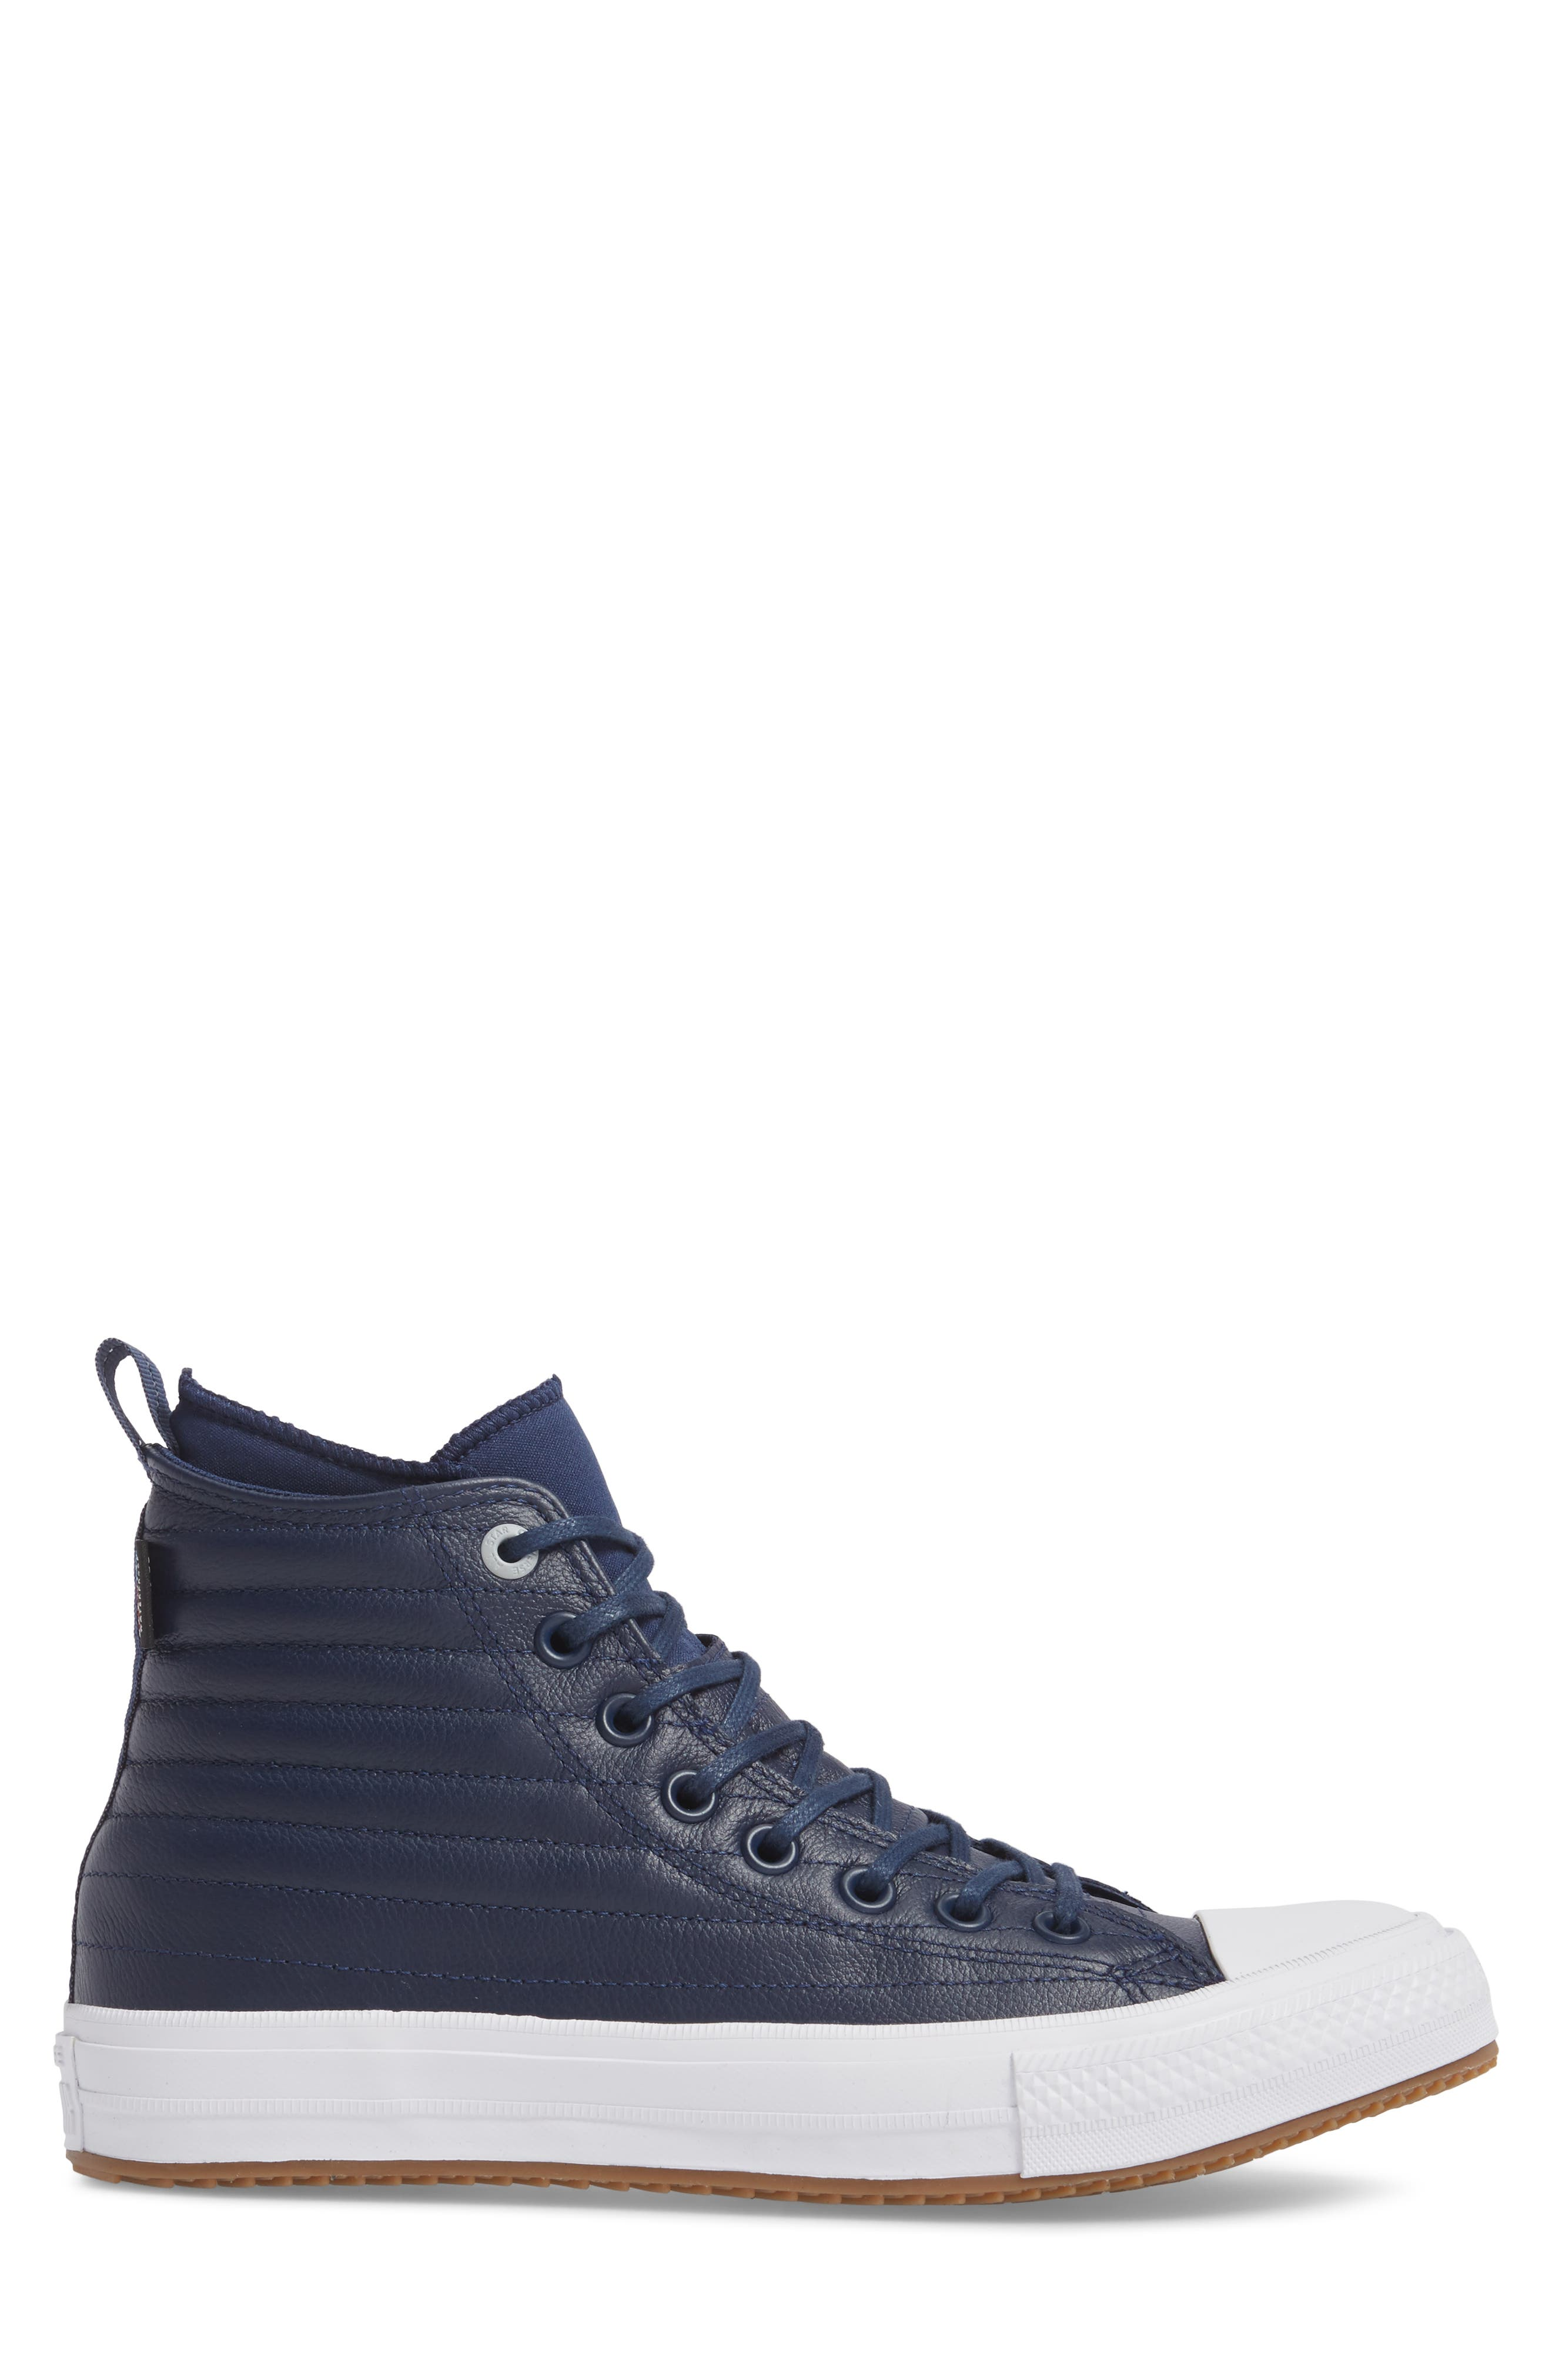 Chuck Taylor<sup>®</sup> All Star<sup>®</sup> Waterproof Quilted Sneaker,                             Alternate thumbnail 6, color,